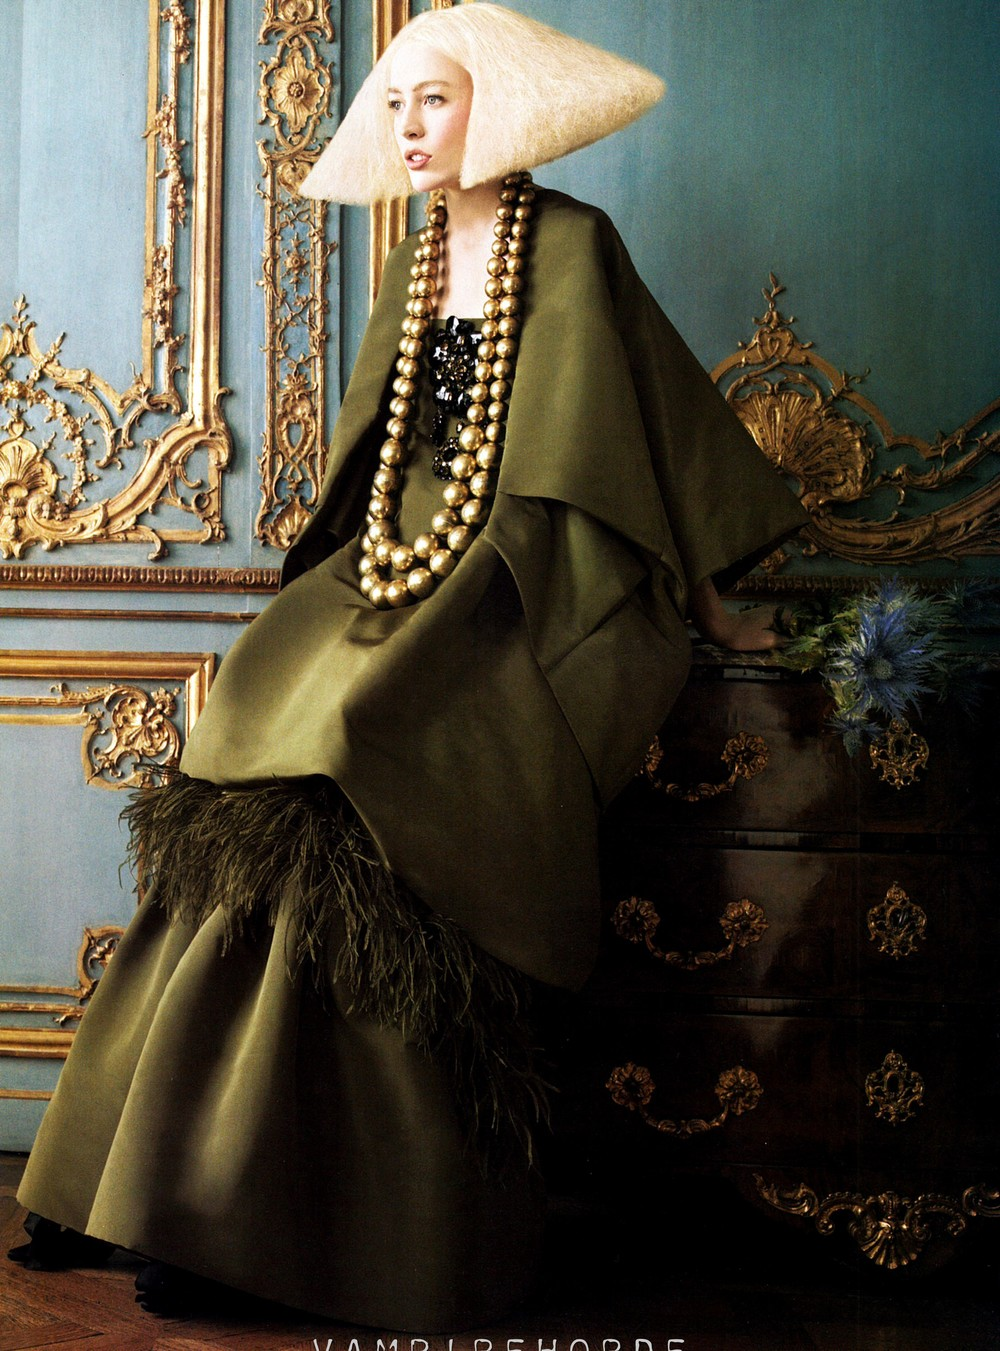 Vogue Racquel Zimmerman David Sims Grace Coddington Raji RM Interior Design Washington DC New York